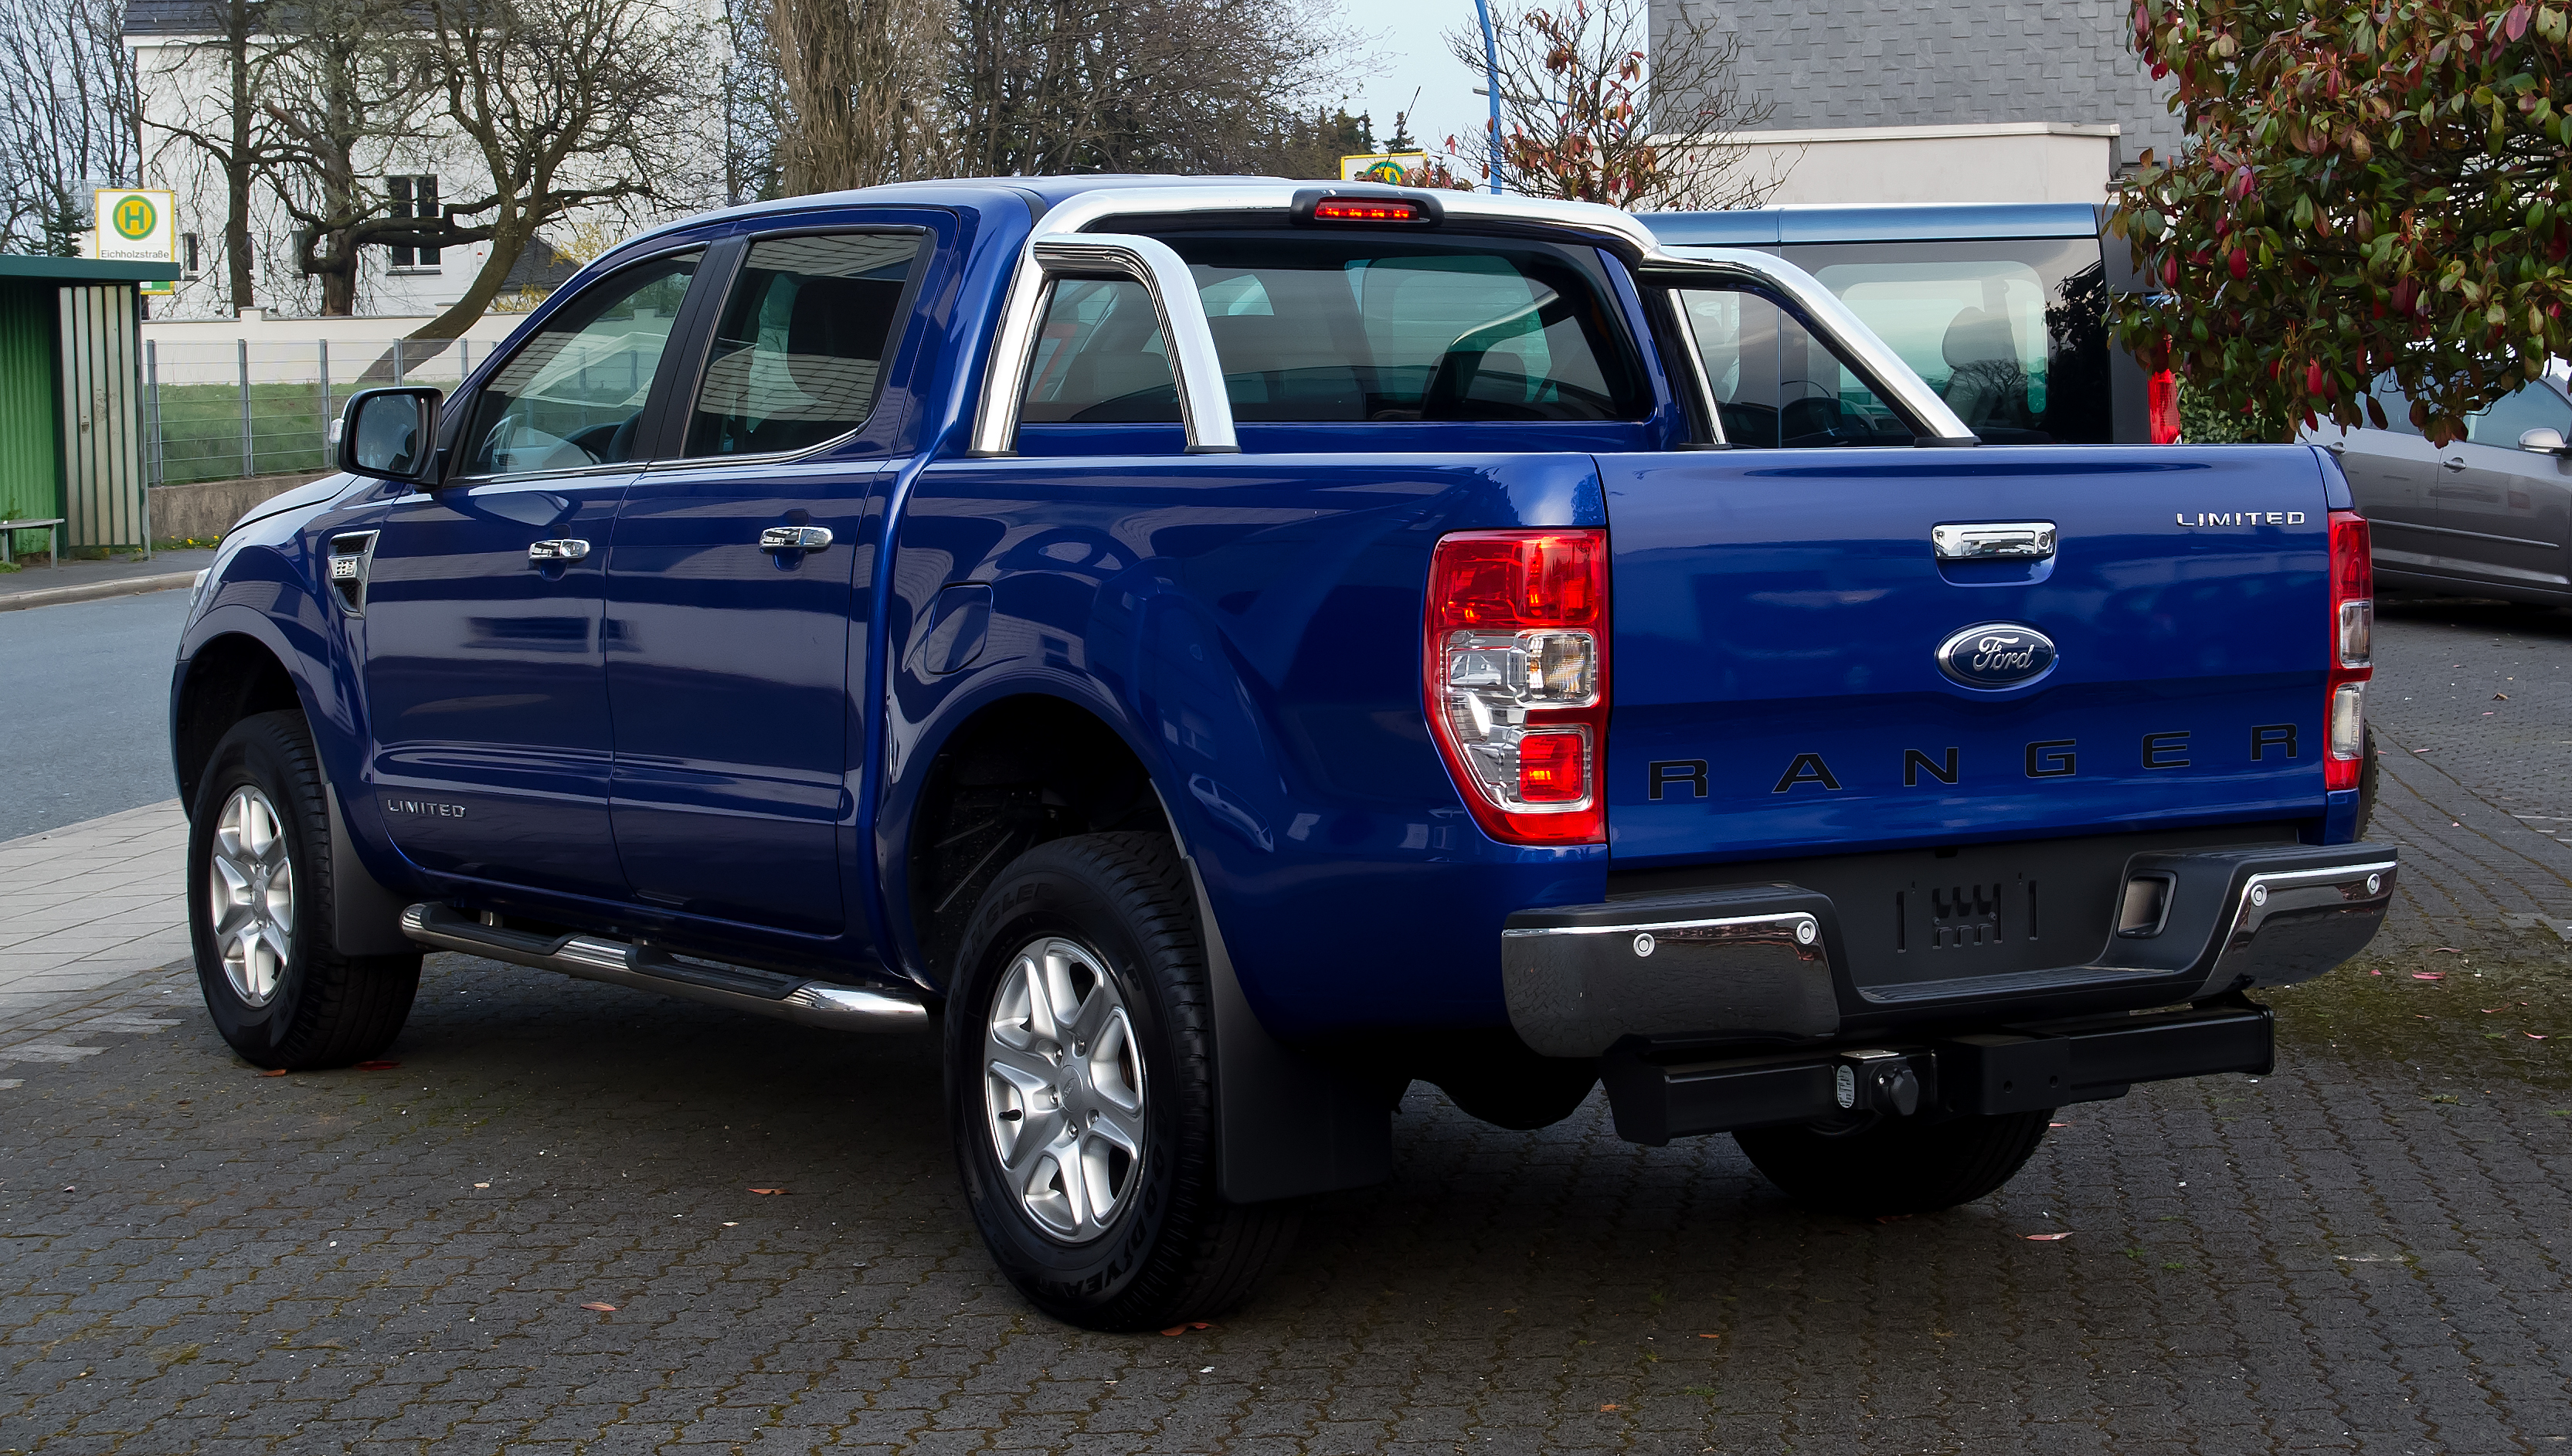 Ford Ranger Xlt Limited Technical Details History Photos